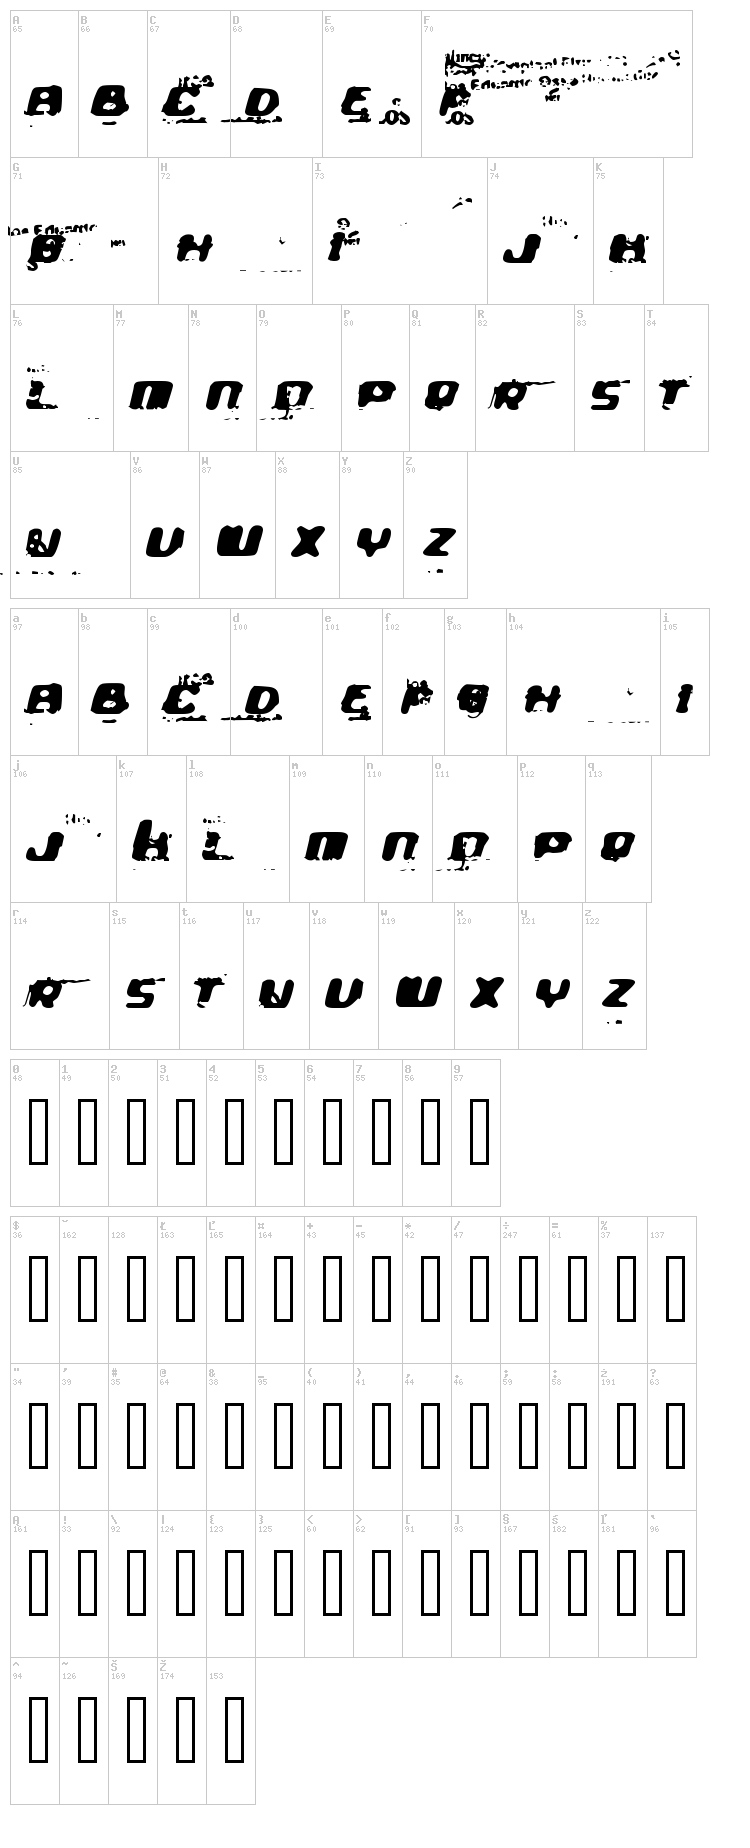 The Ultra font map